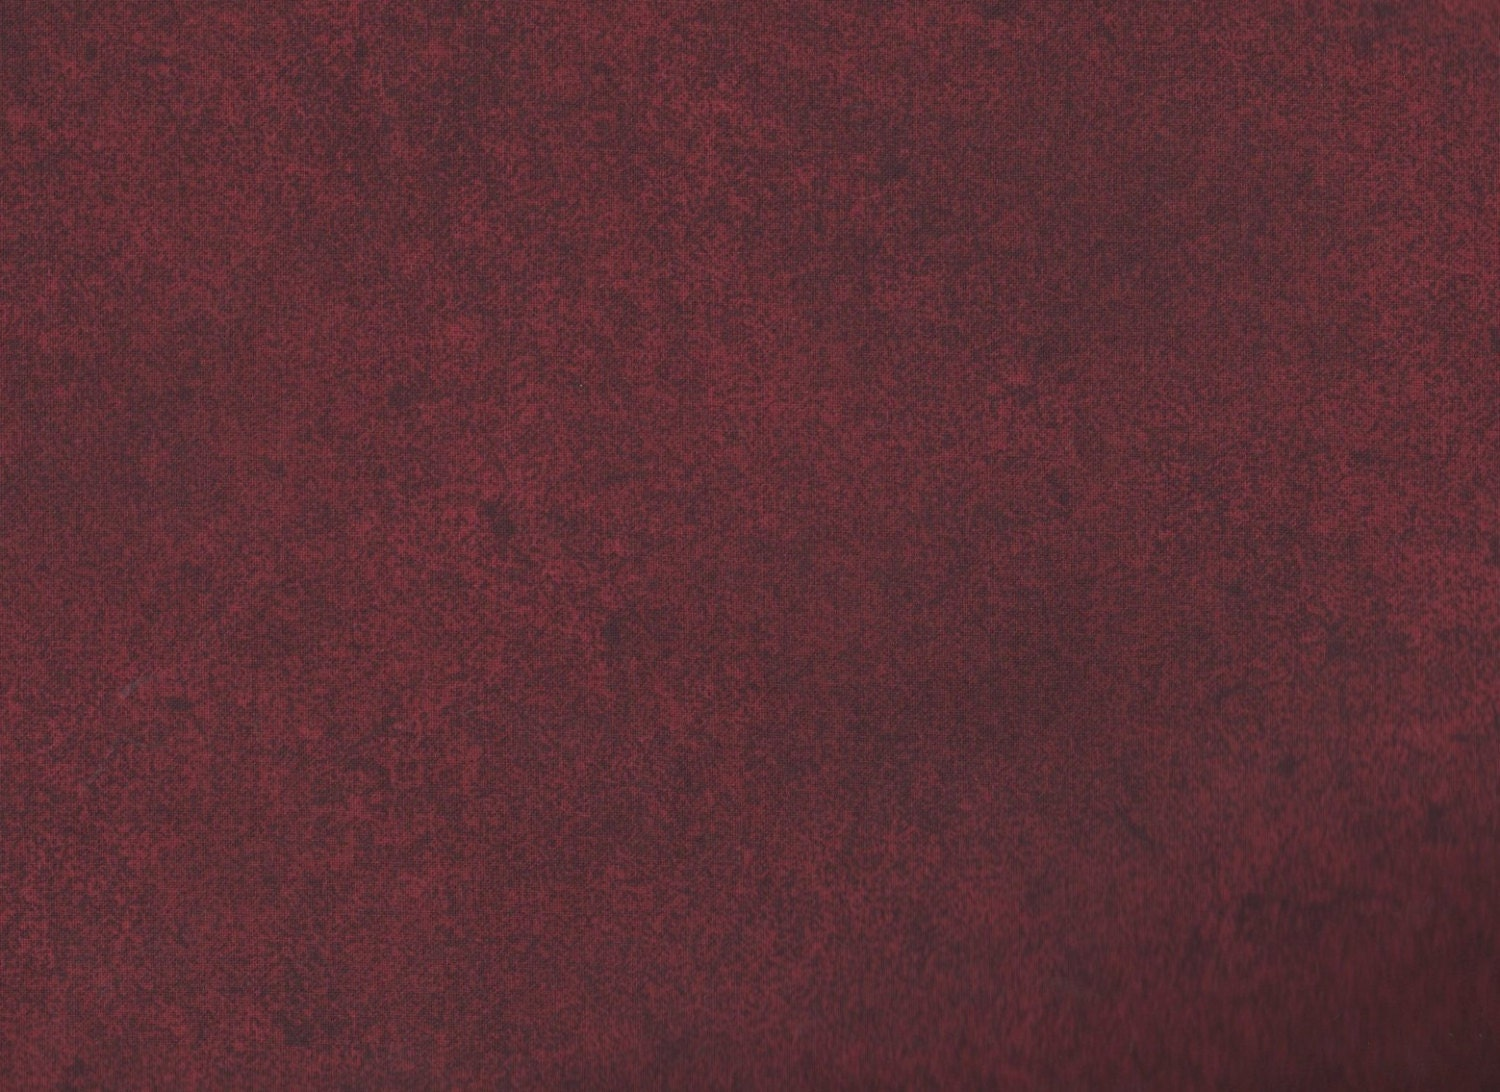 115 Quilt Backing Extra Wide Fabric Maroon Suede